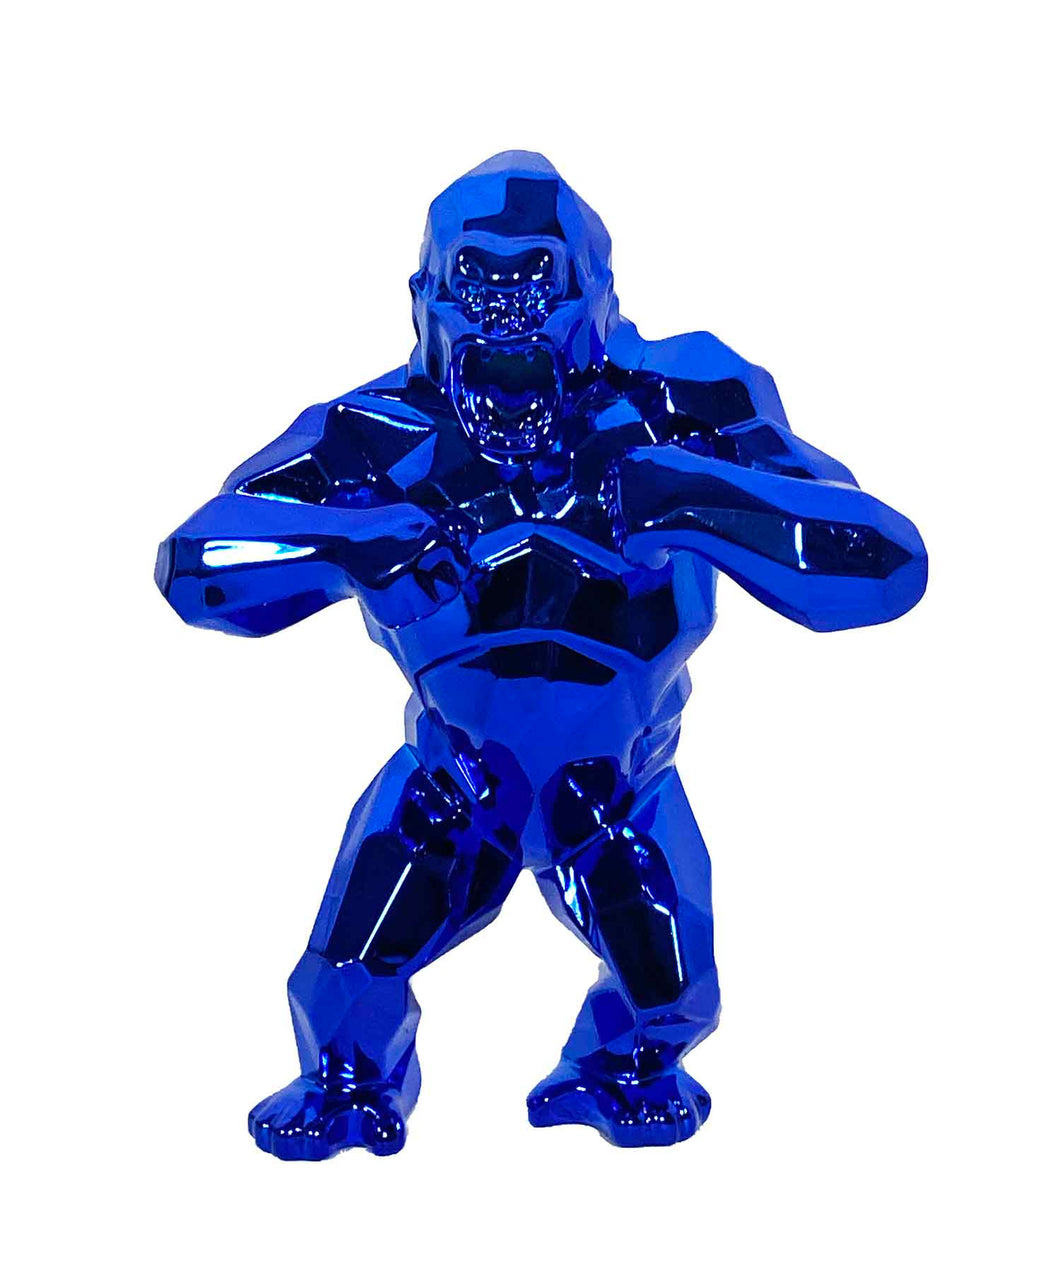 RICHARD ORLINSKI 'Kong Spirit' (blue) Resin Art Figure